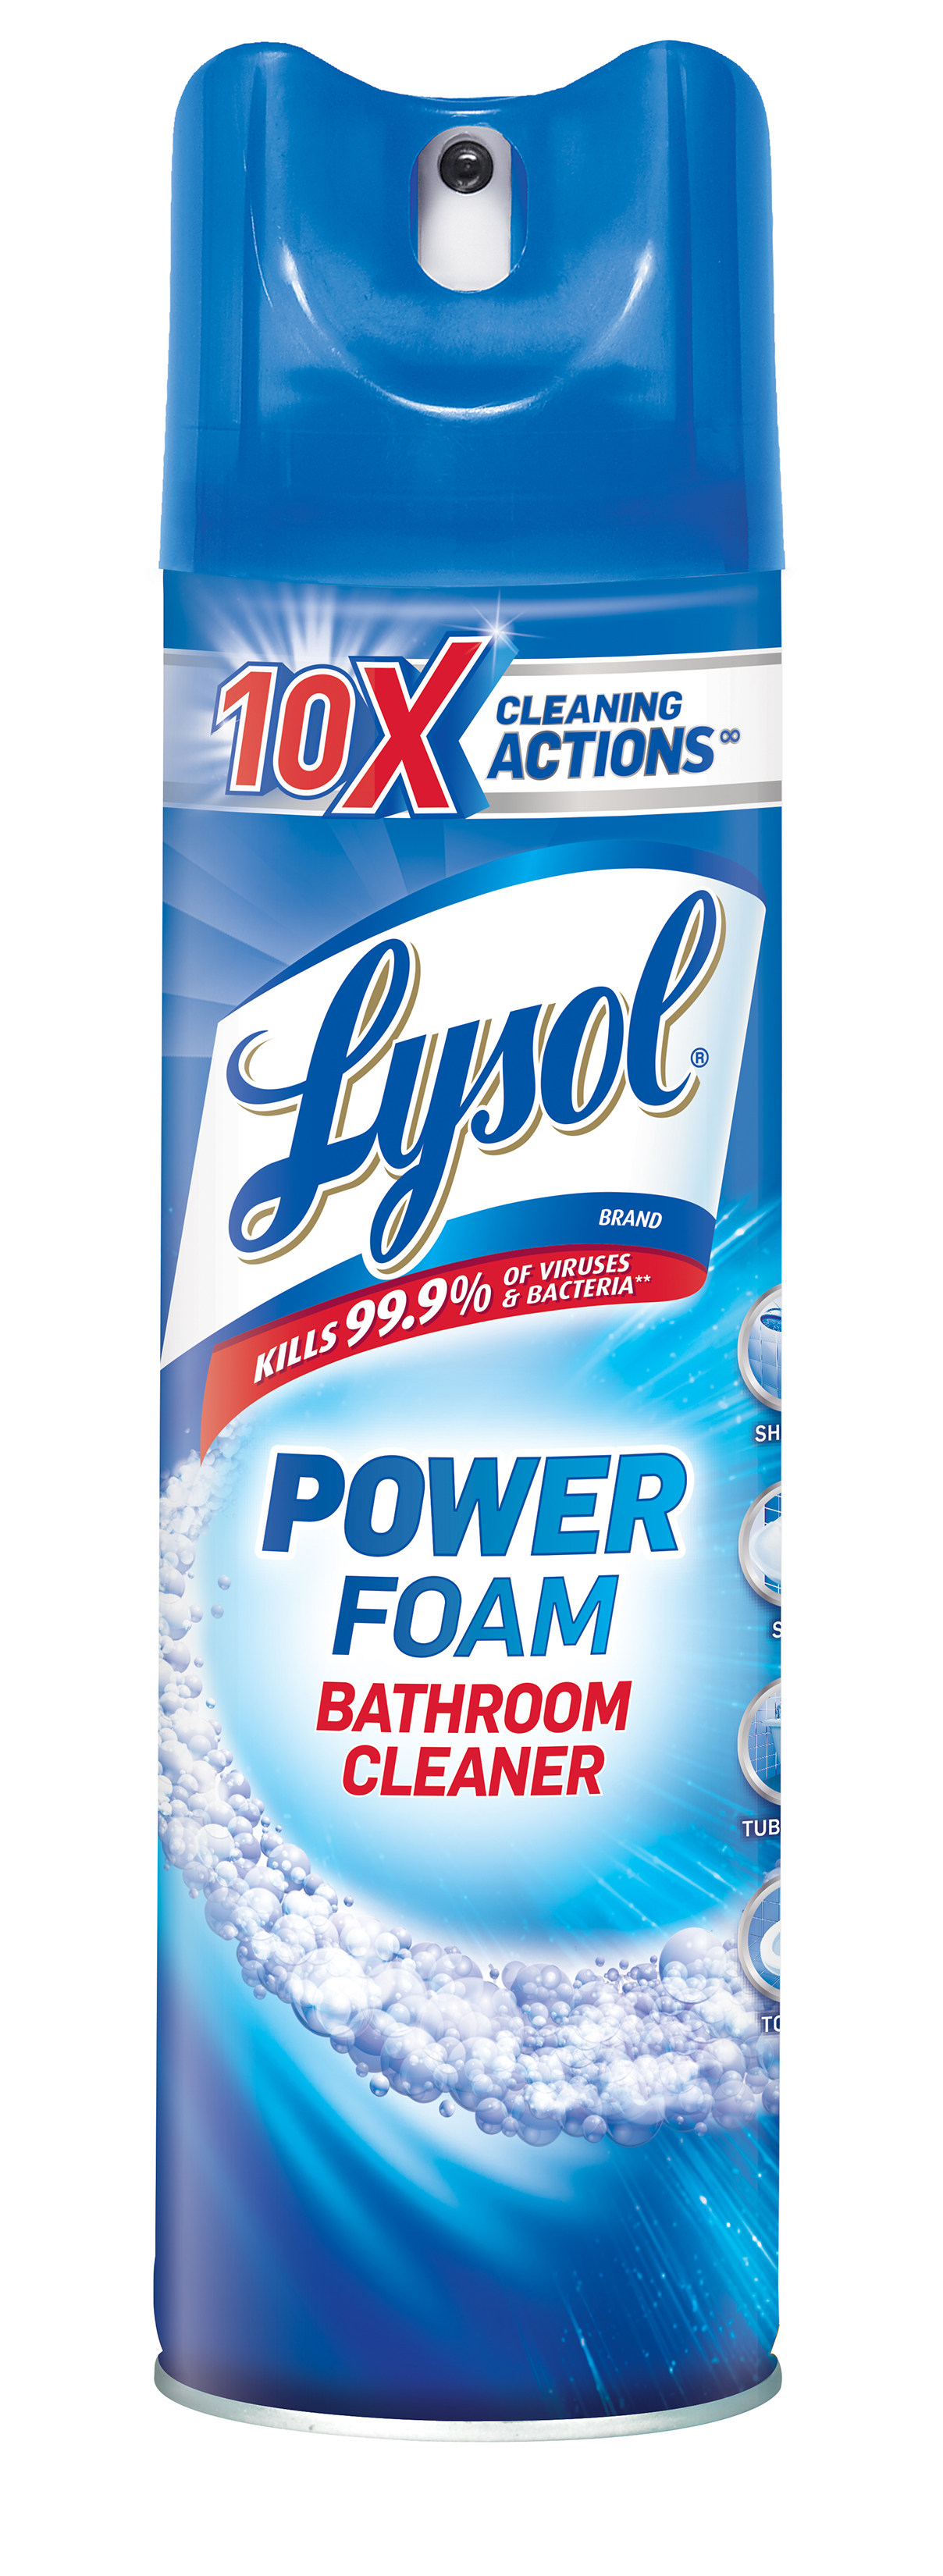 front foam power picture ounce view review s cleaner bathroom tek of tom stop can lysol